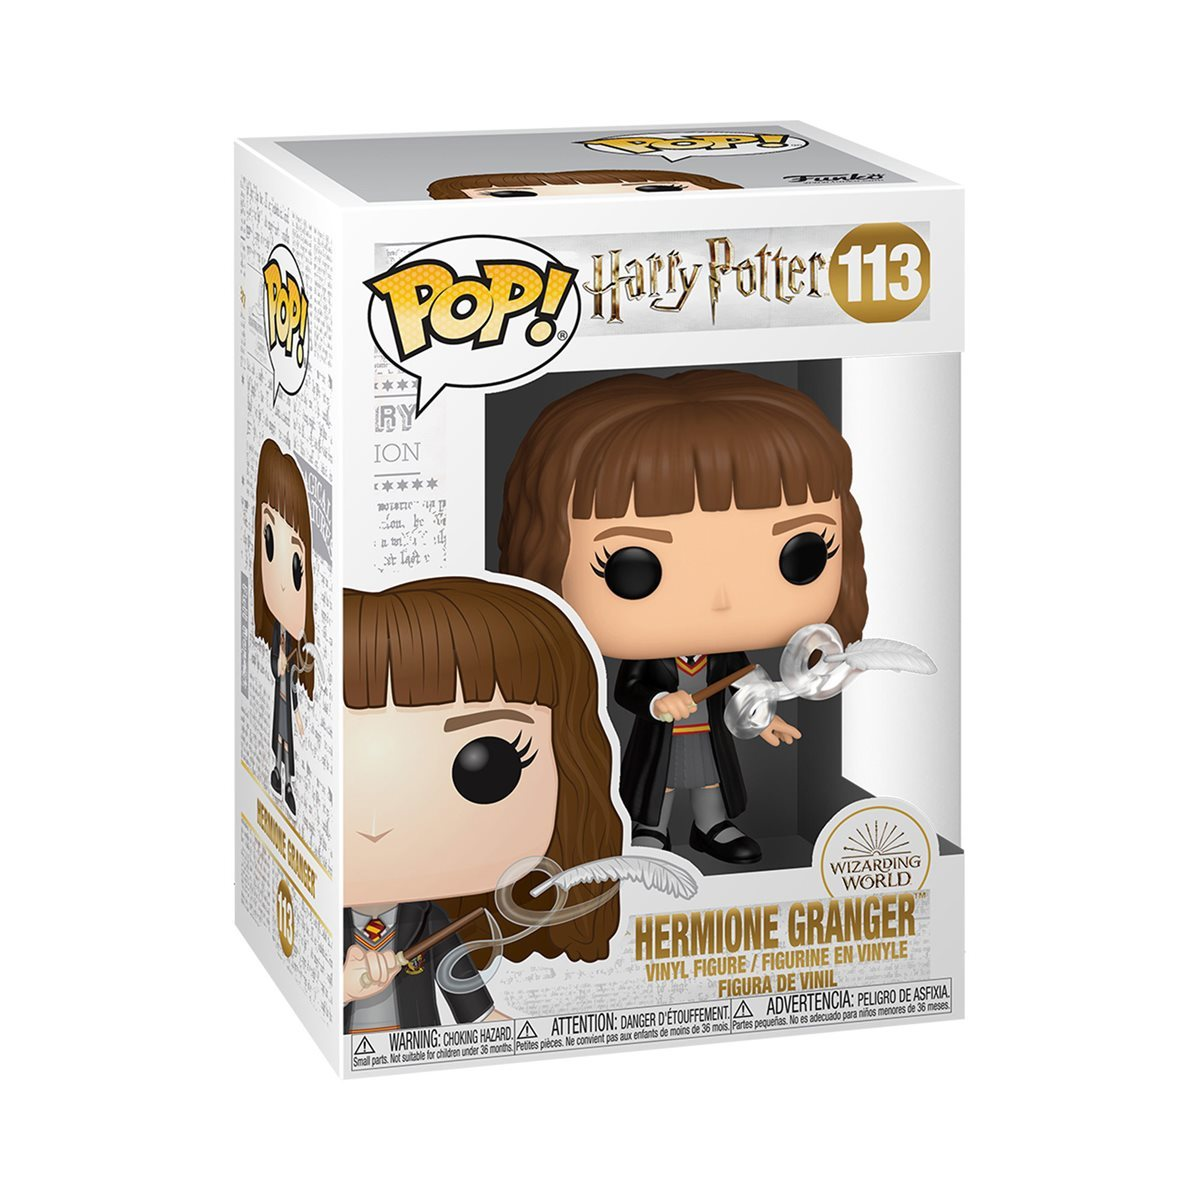 Harry Potter: Hermione Granger (with Feather) - Pop! Vinyl Figure image